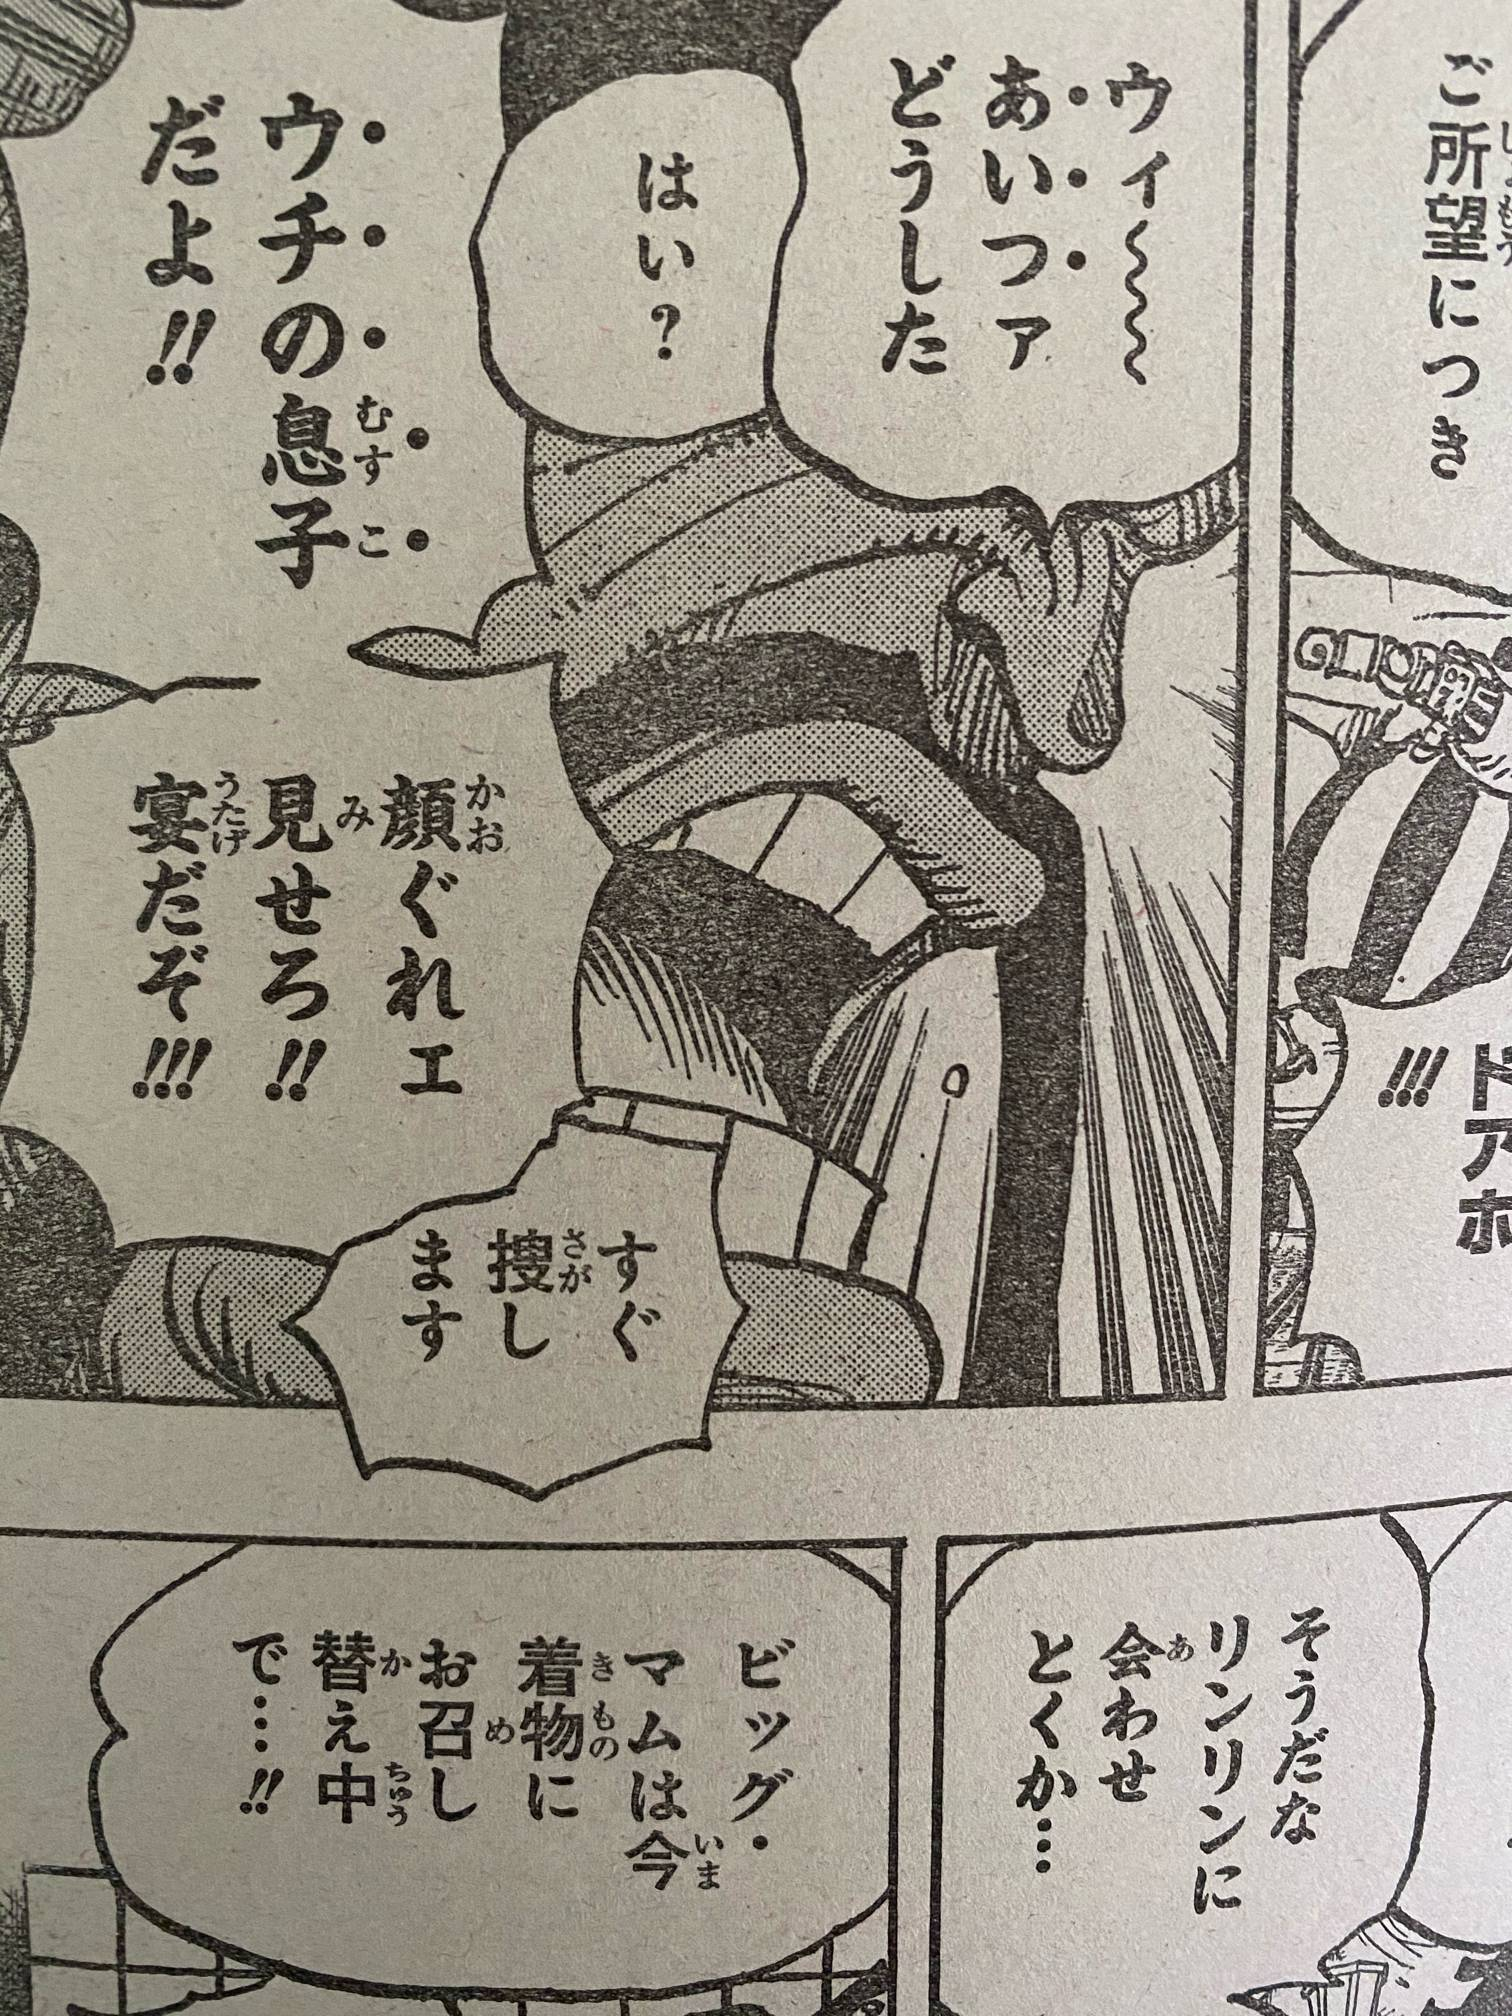 One Piece Spoilers 977 EDC5cpL